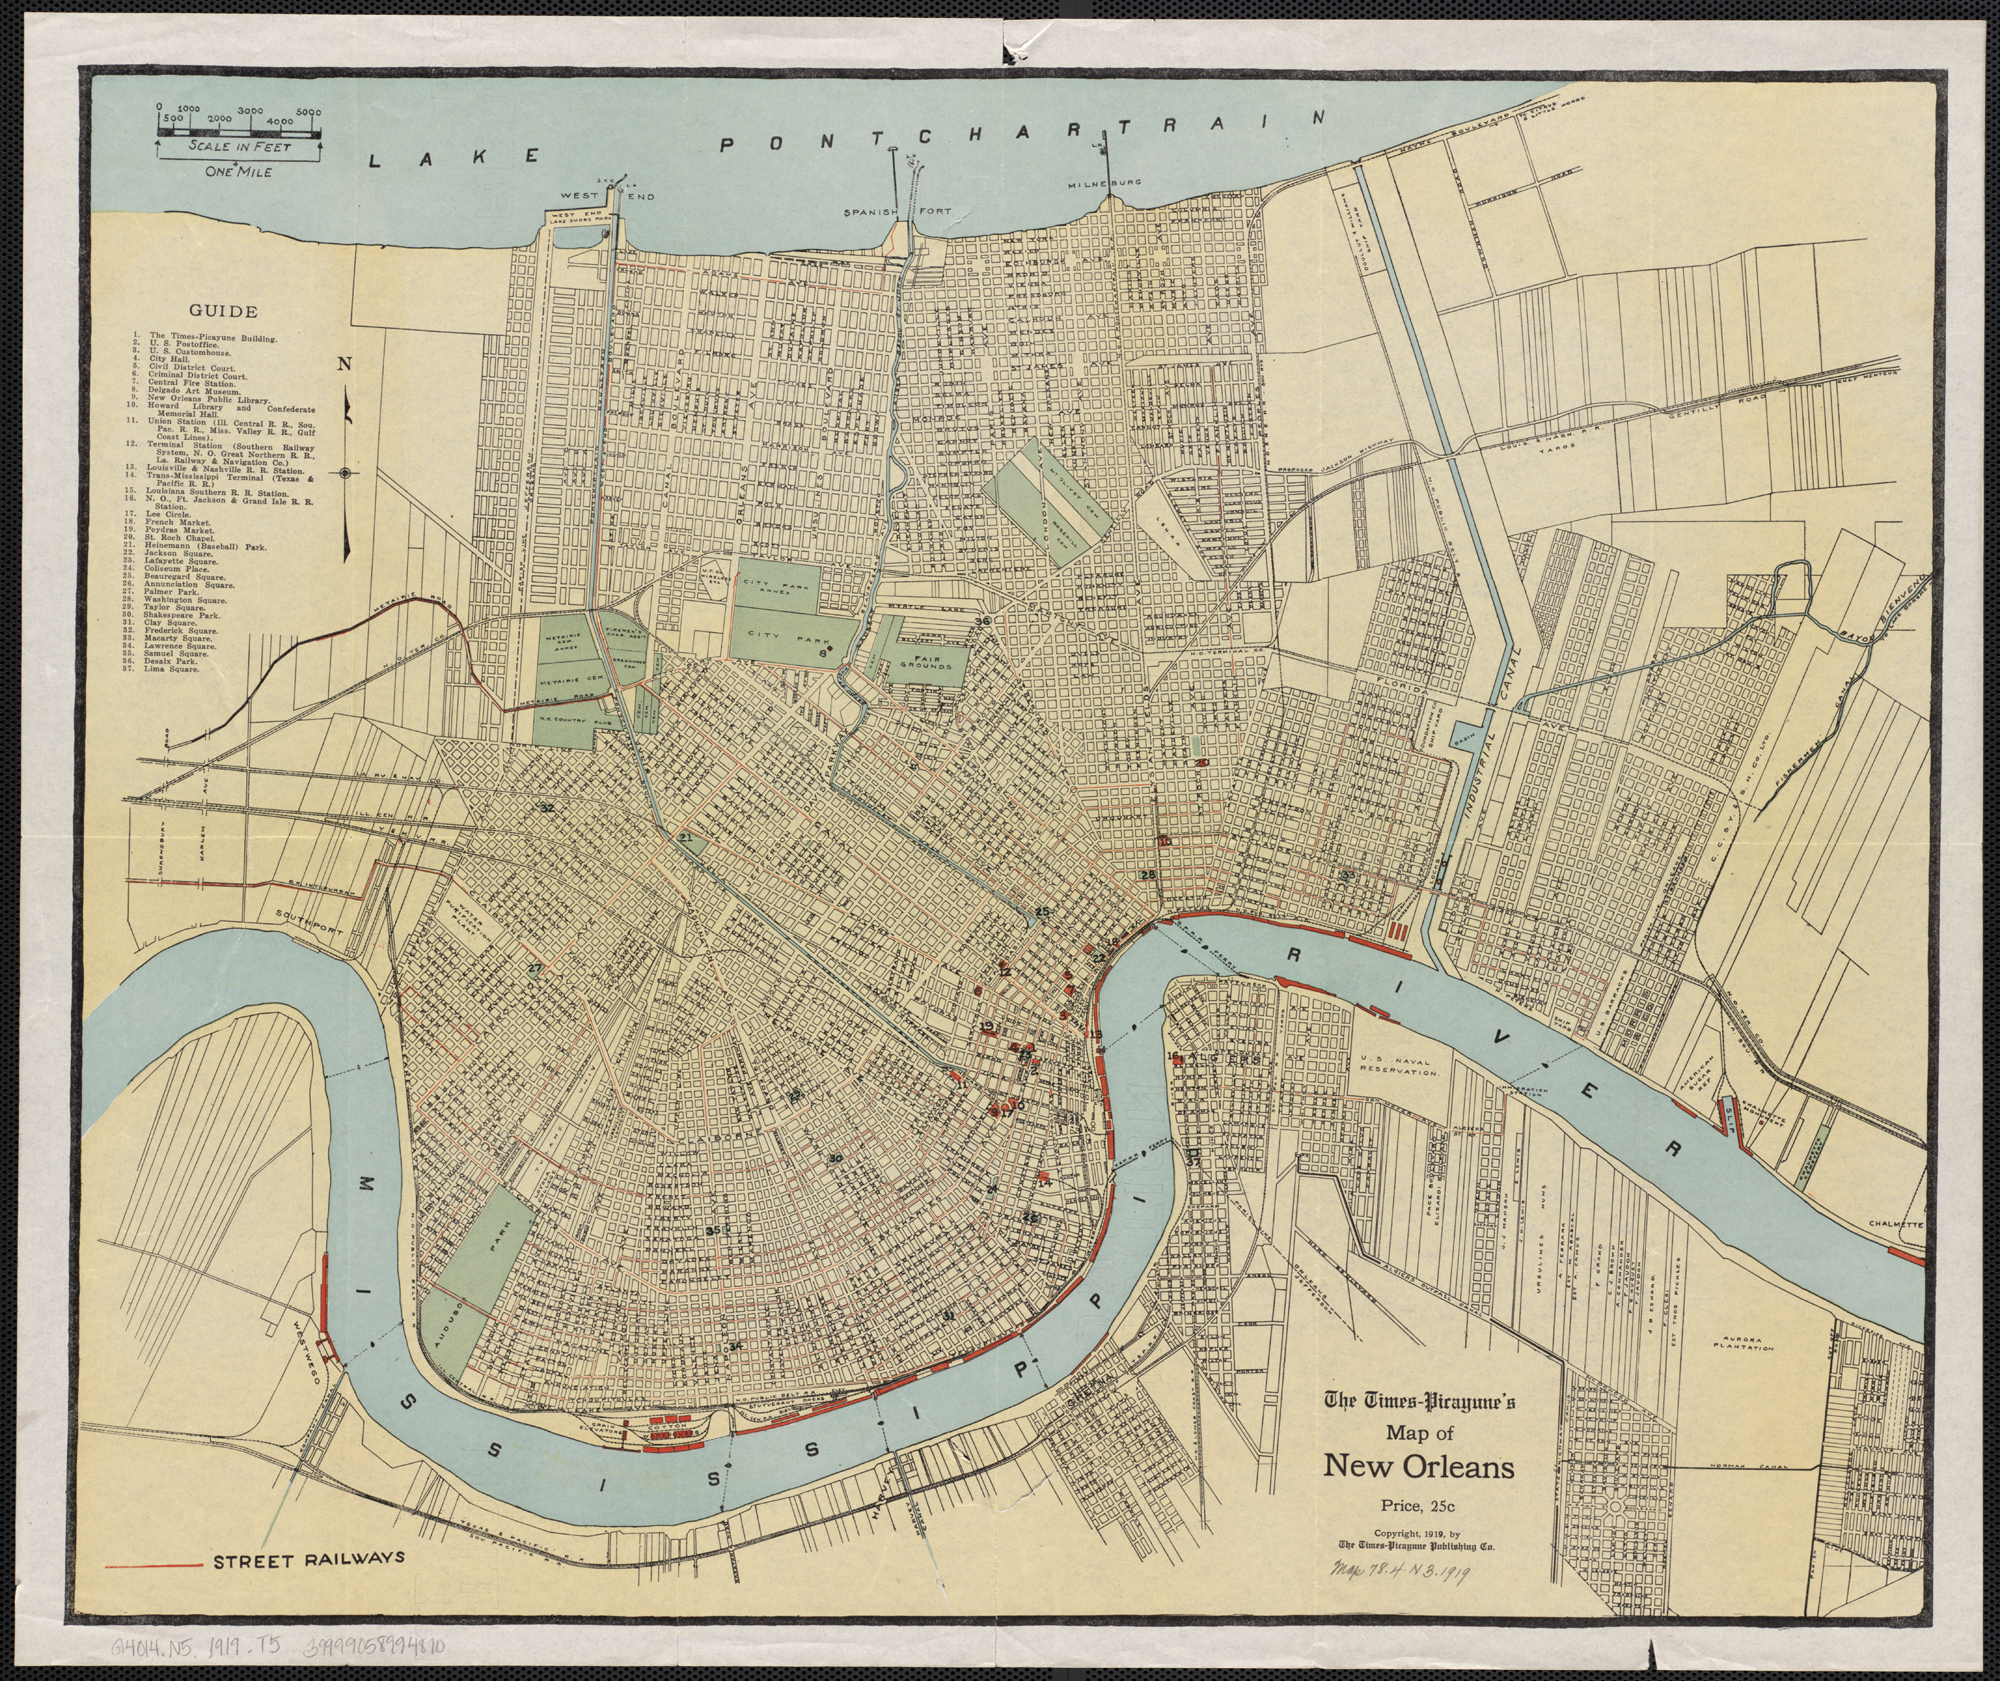 File:Times-Picayune map of New Orleans 1919.jpg - Wikimedia Commons